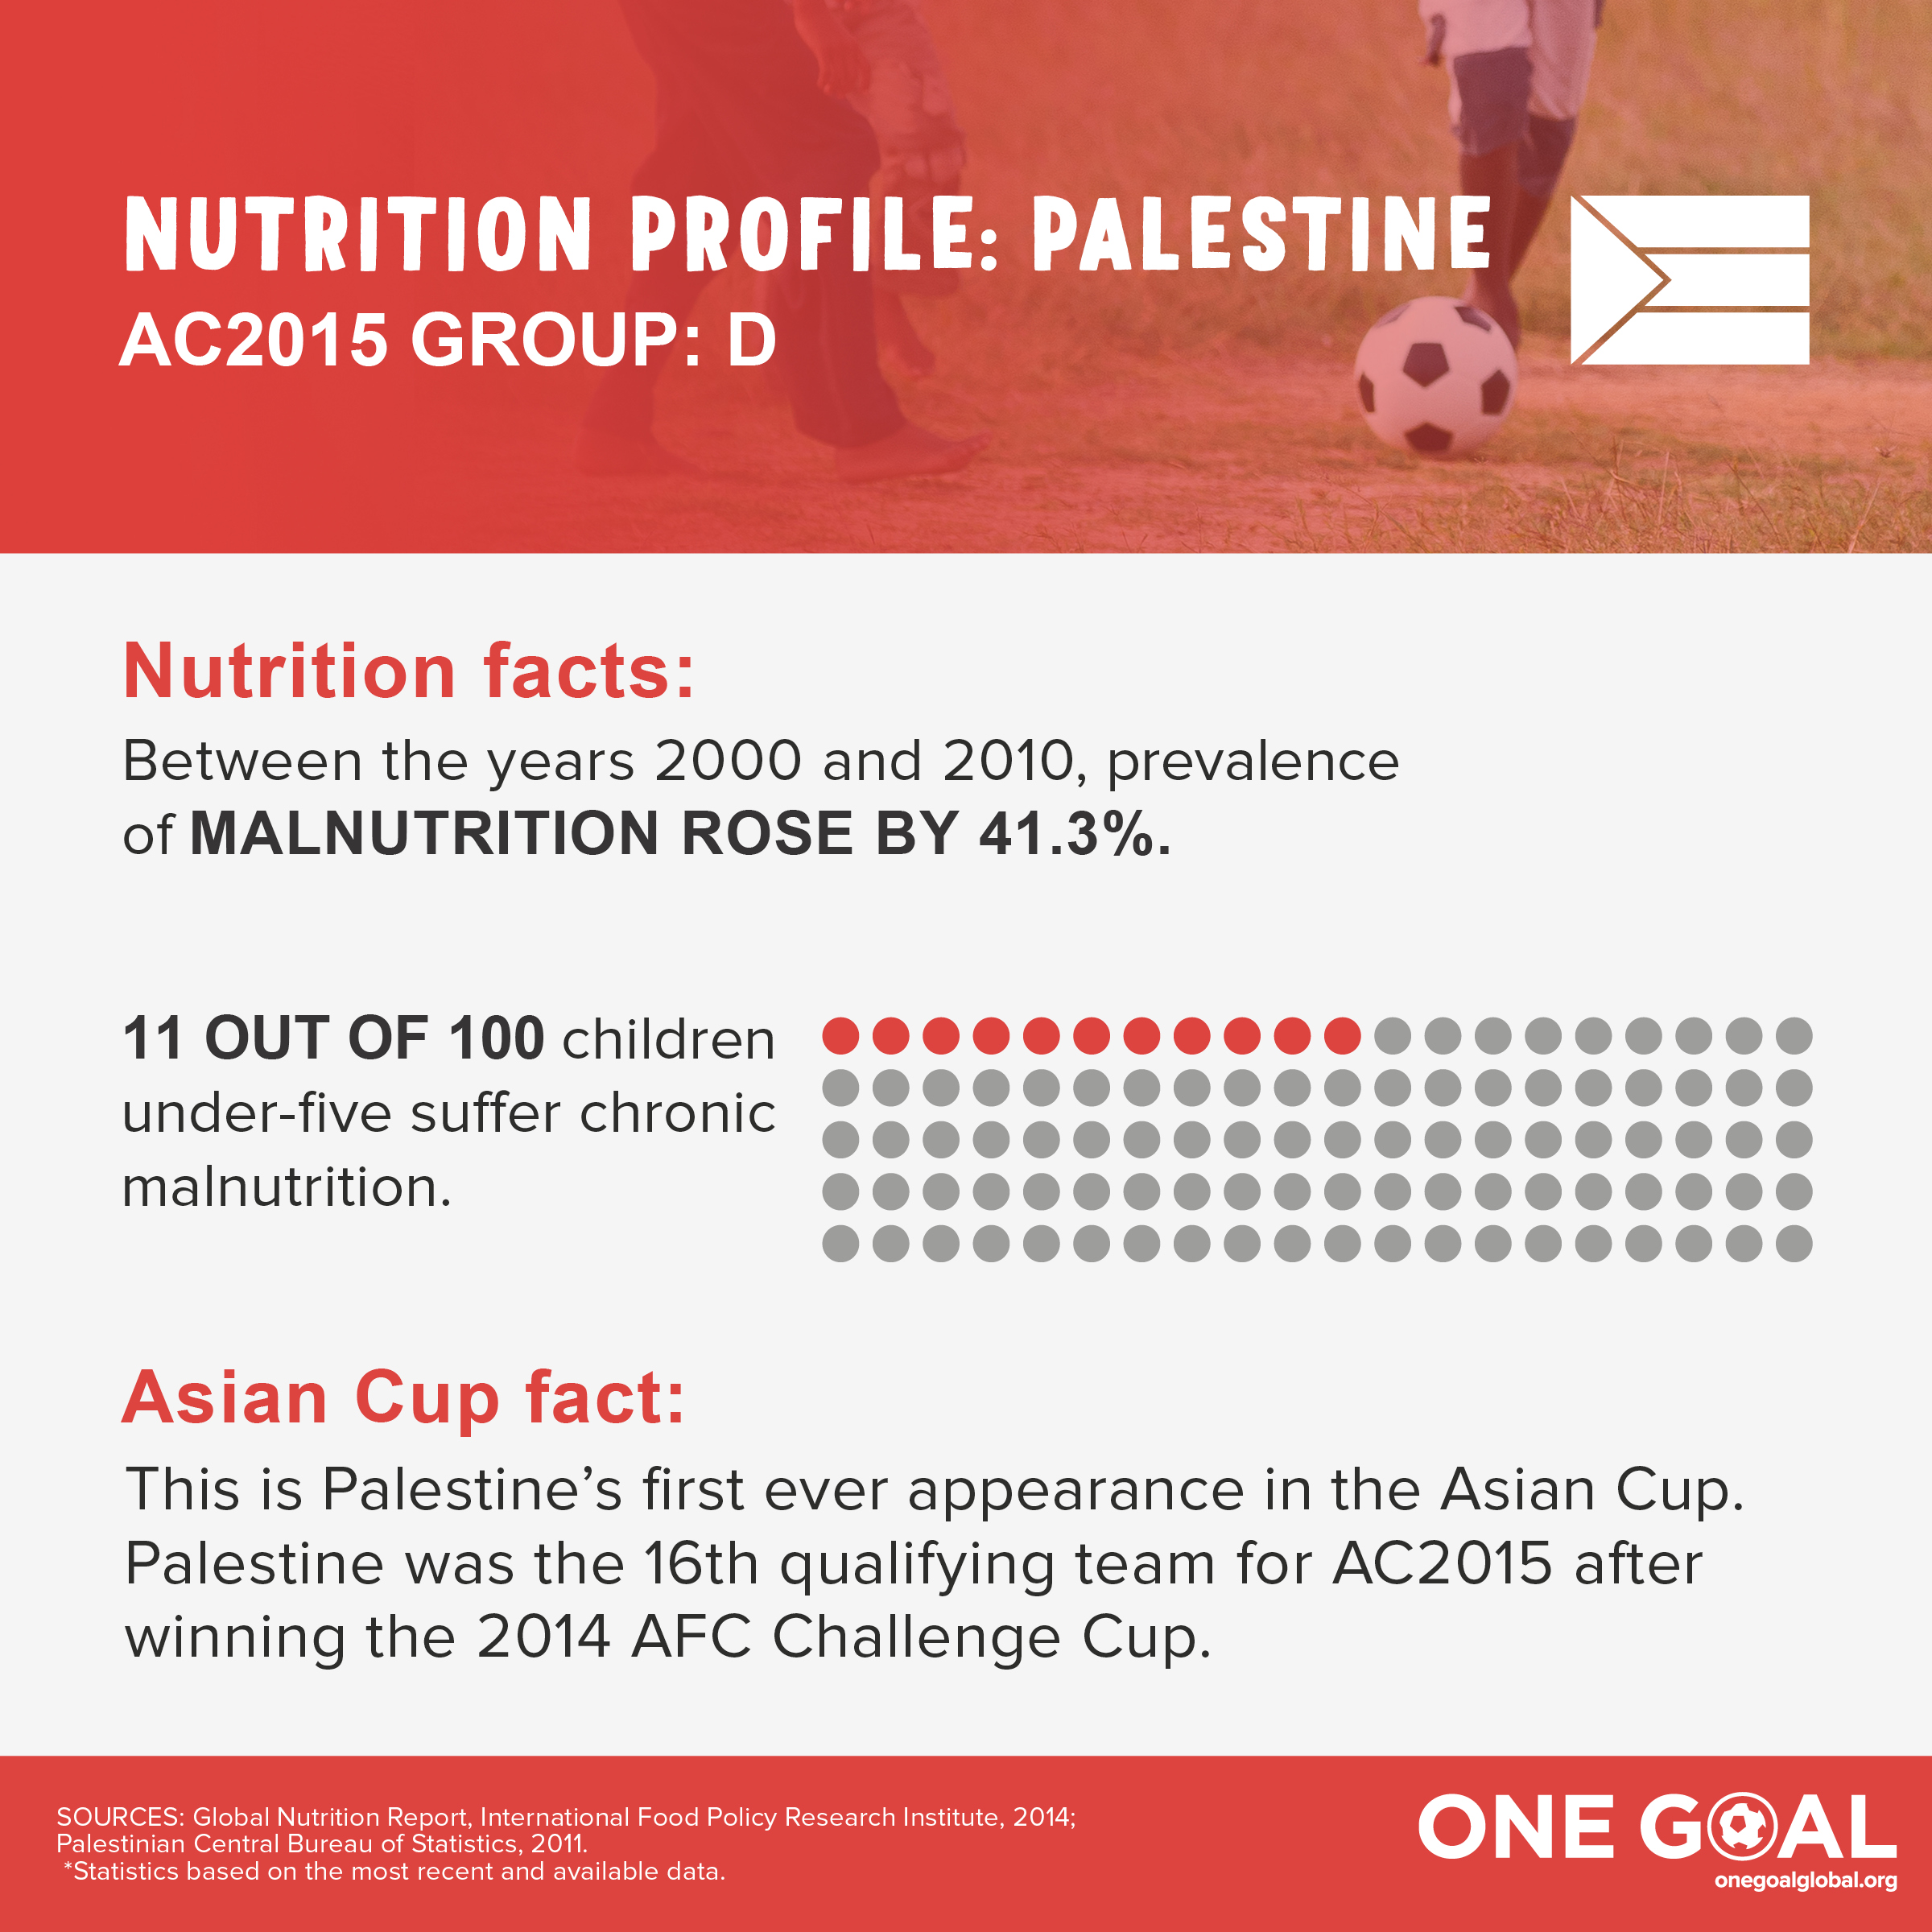 GroupD_nutritionprofile_Palestine.jpg